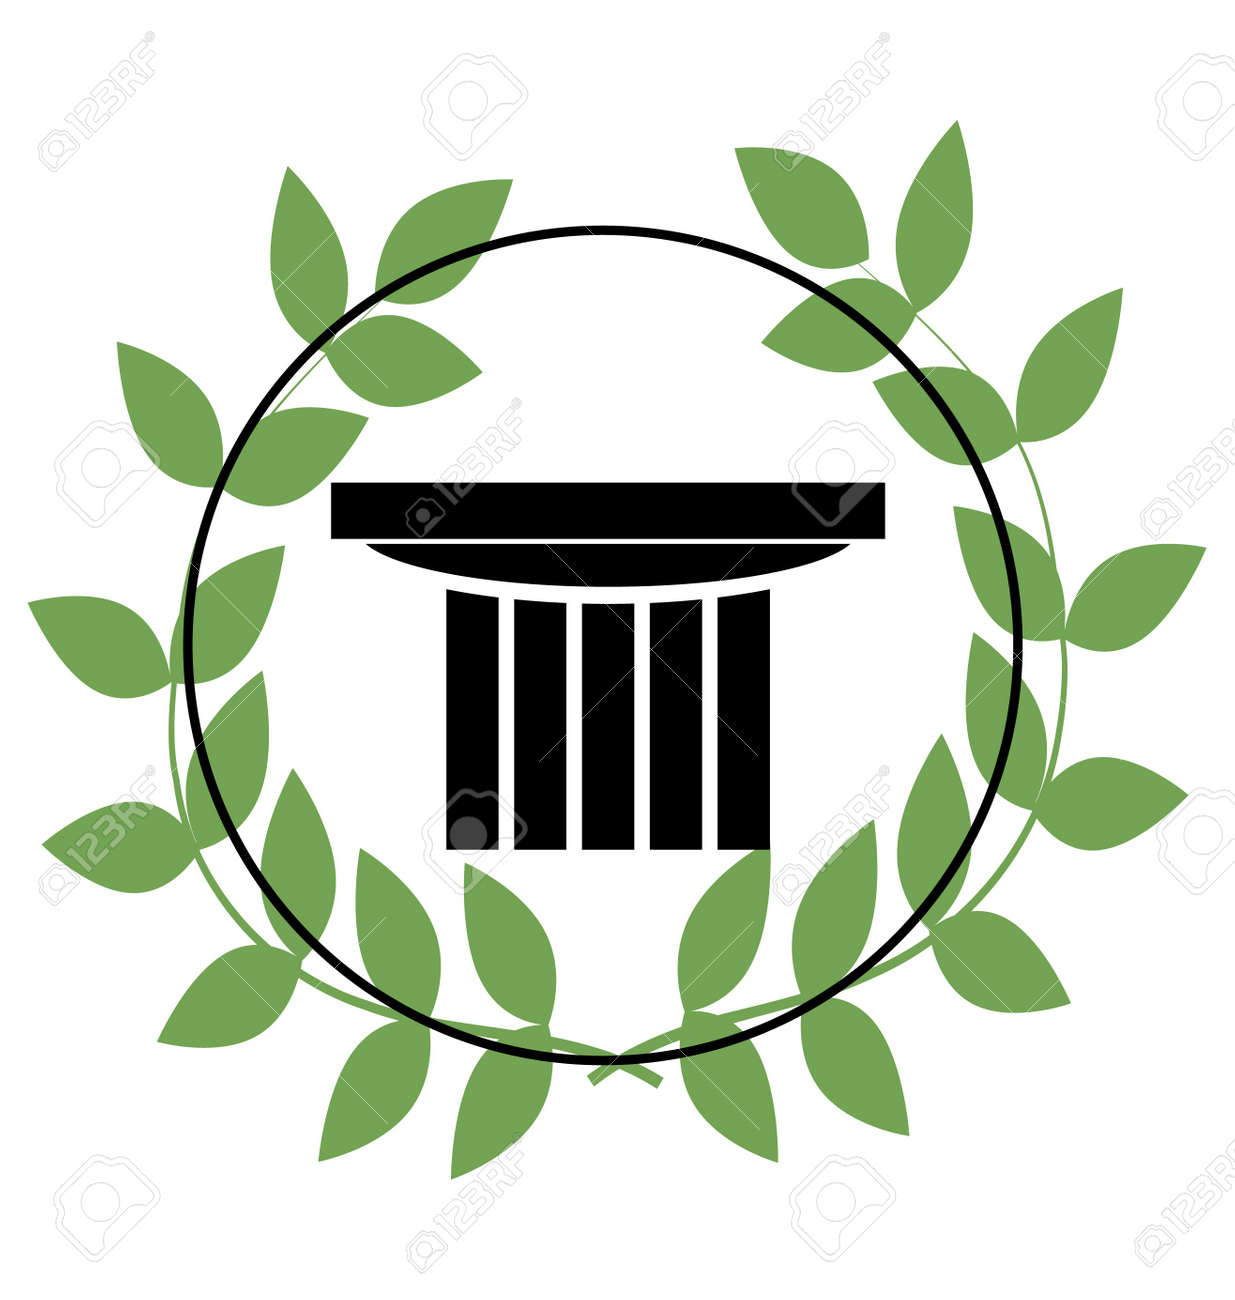 Icon With Greek Symbols Royalty Free Cliparts Vectors And Stock